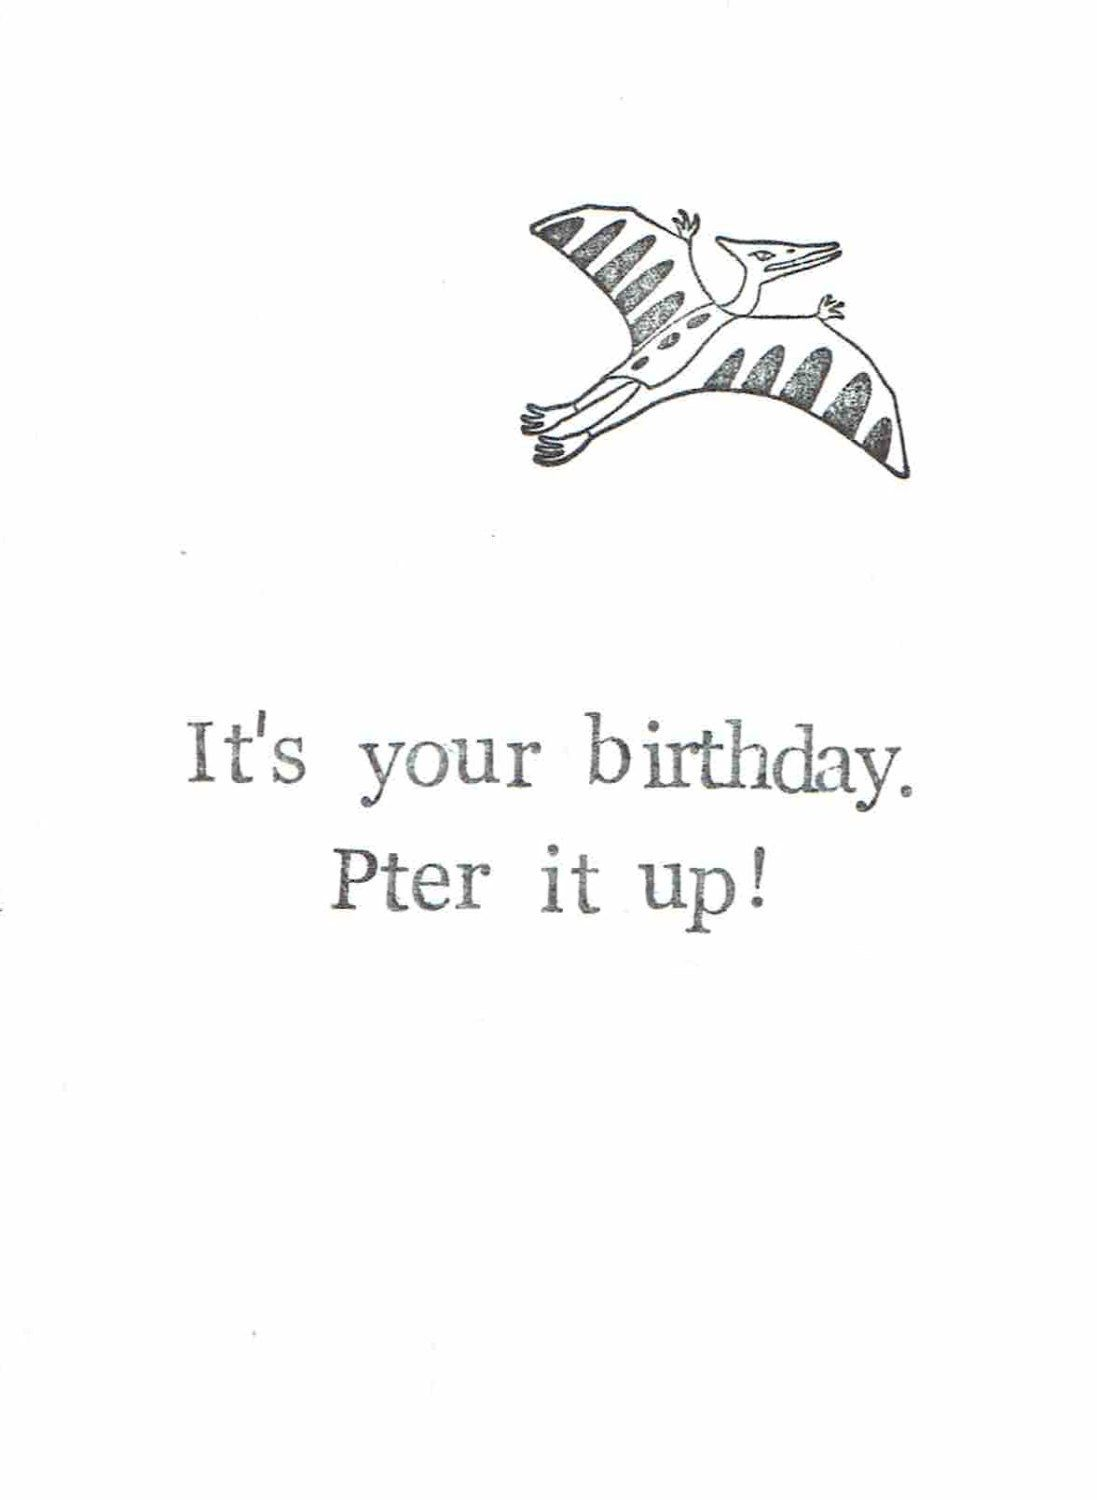 Pter It Up Birthday Card Funny Pterodactyl Dinosaur Humor Natural